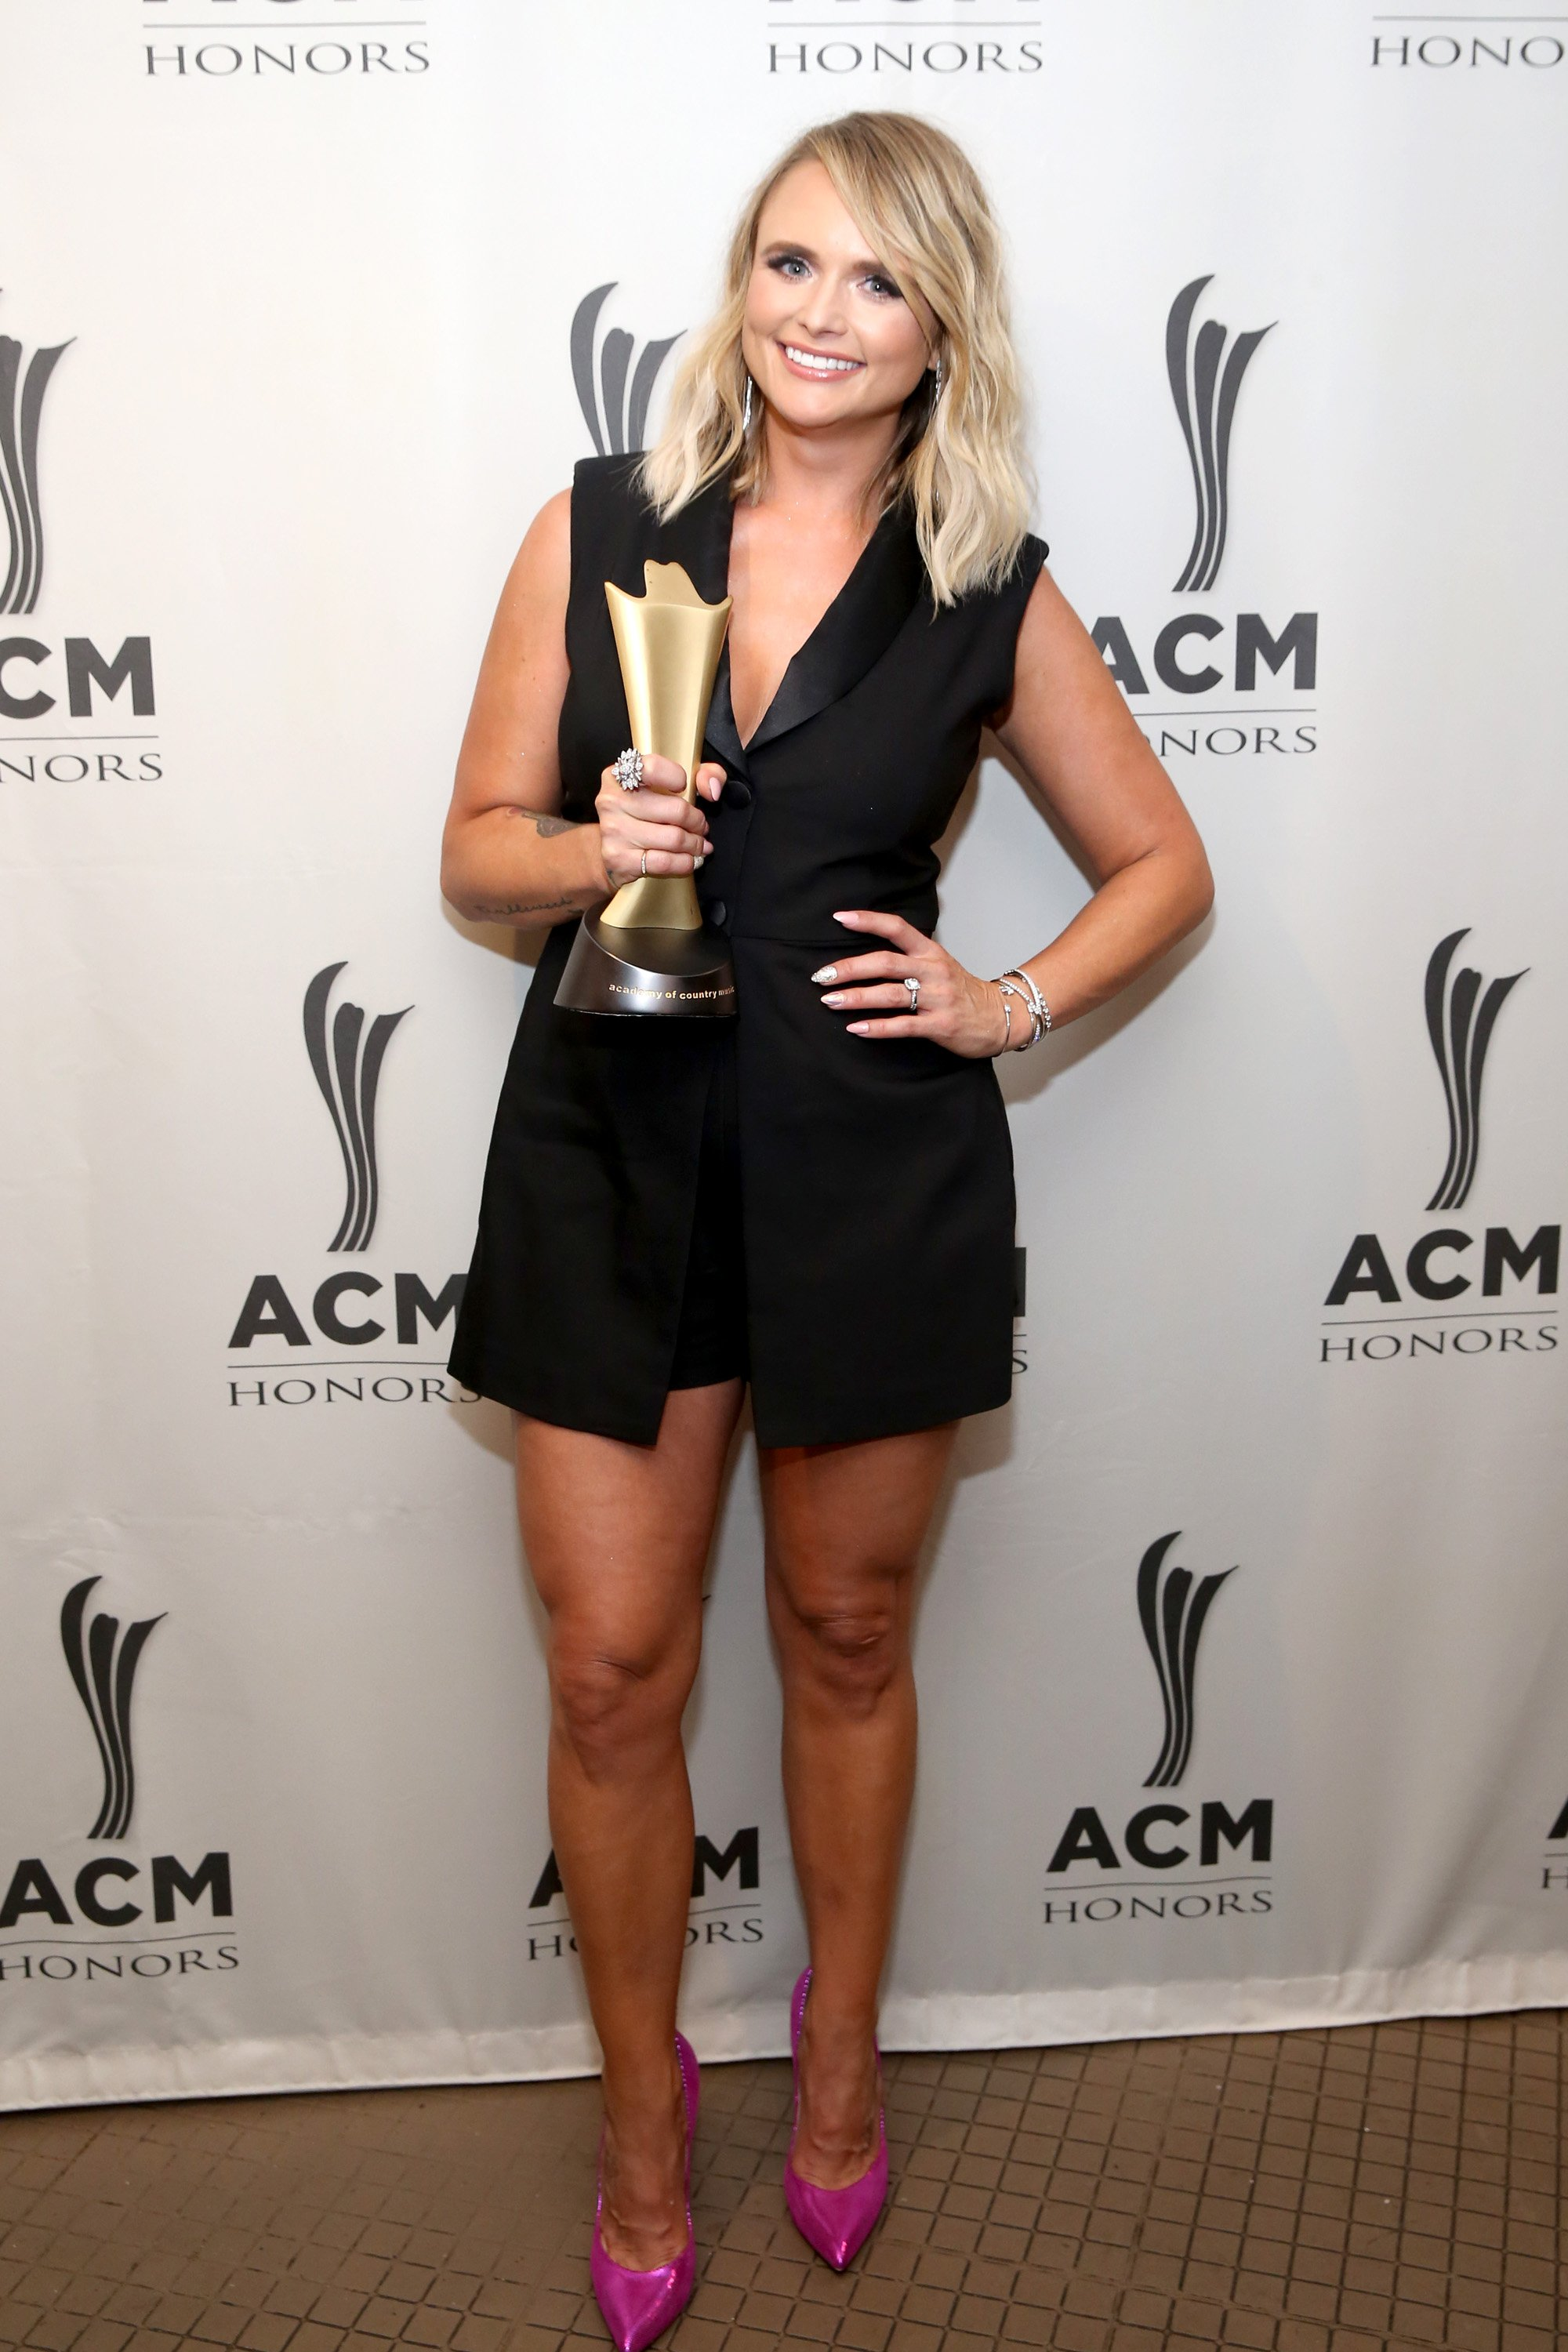 Image Credits: Getty Images | The iconic country songwriter has won many music awards